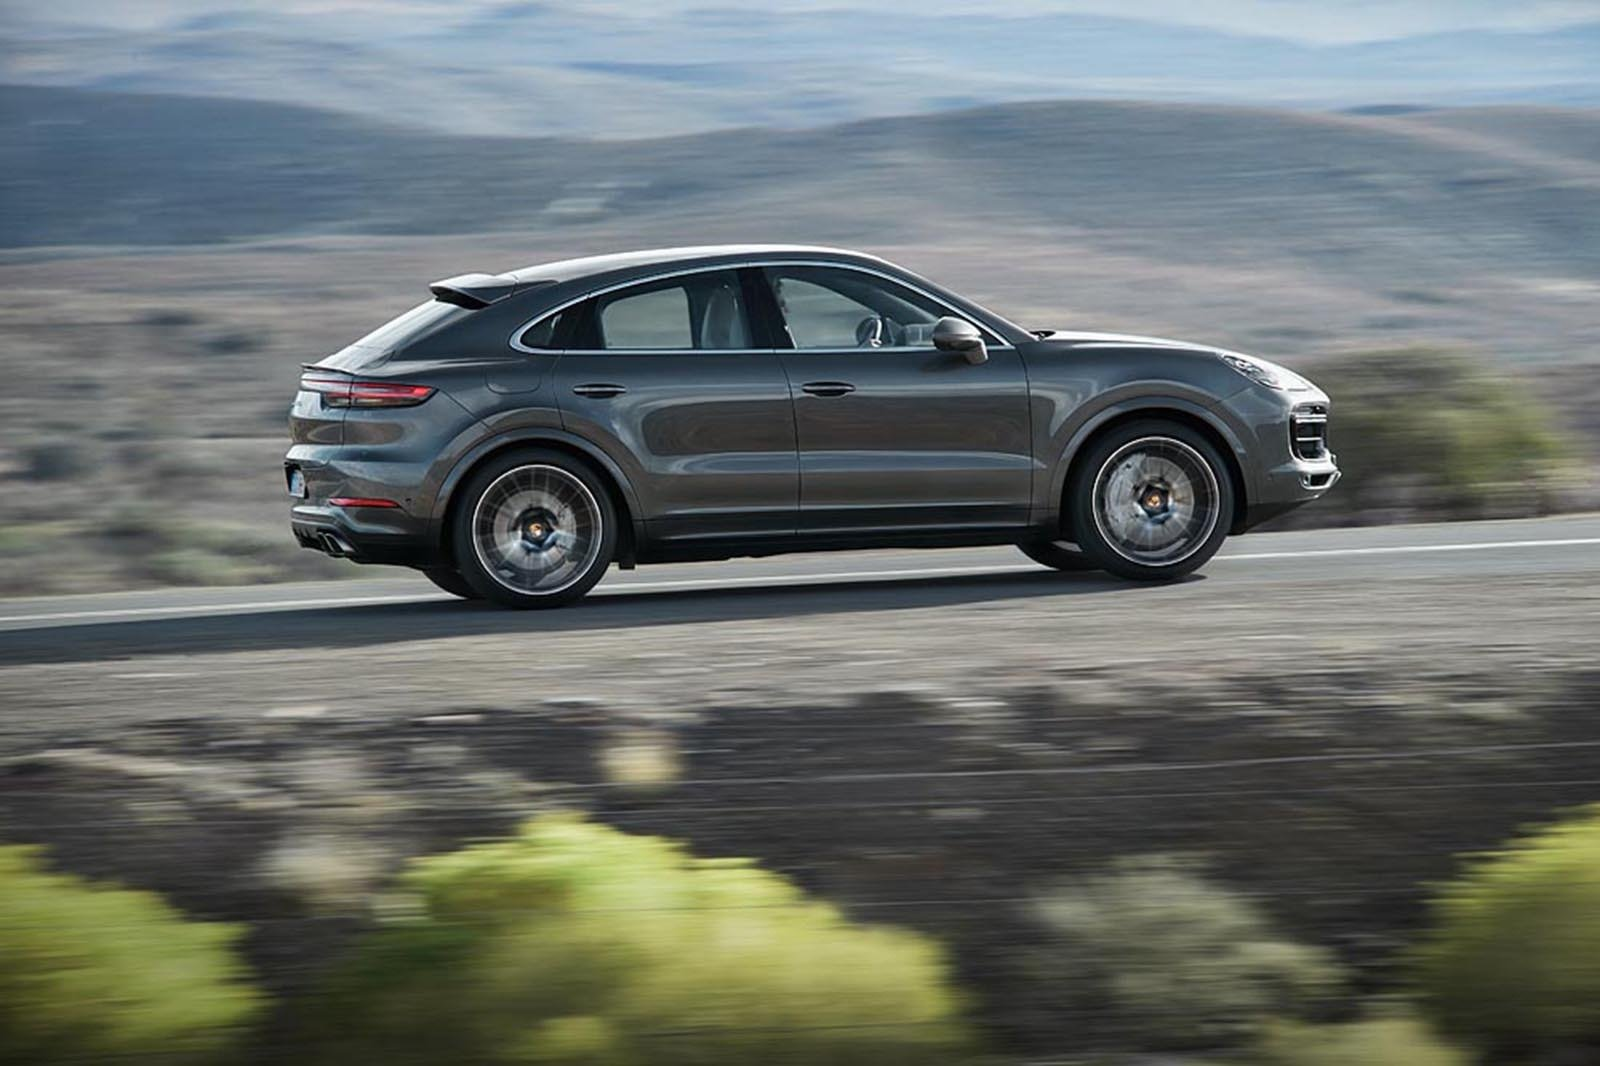 58 The Best 2020 Porsche Cayenne Model Speed Test